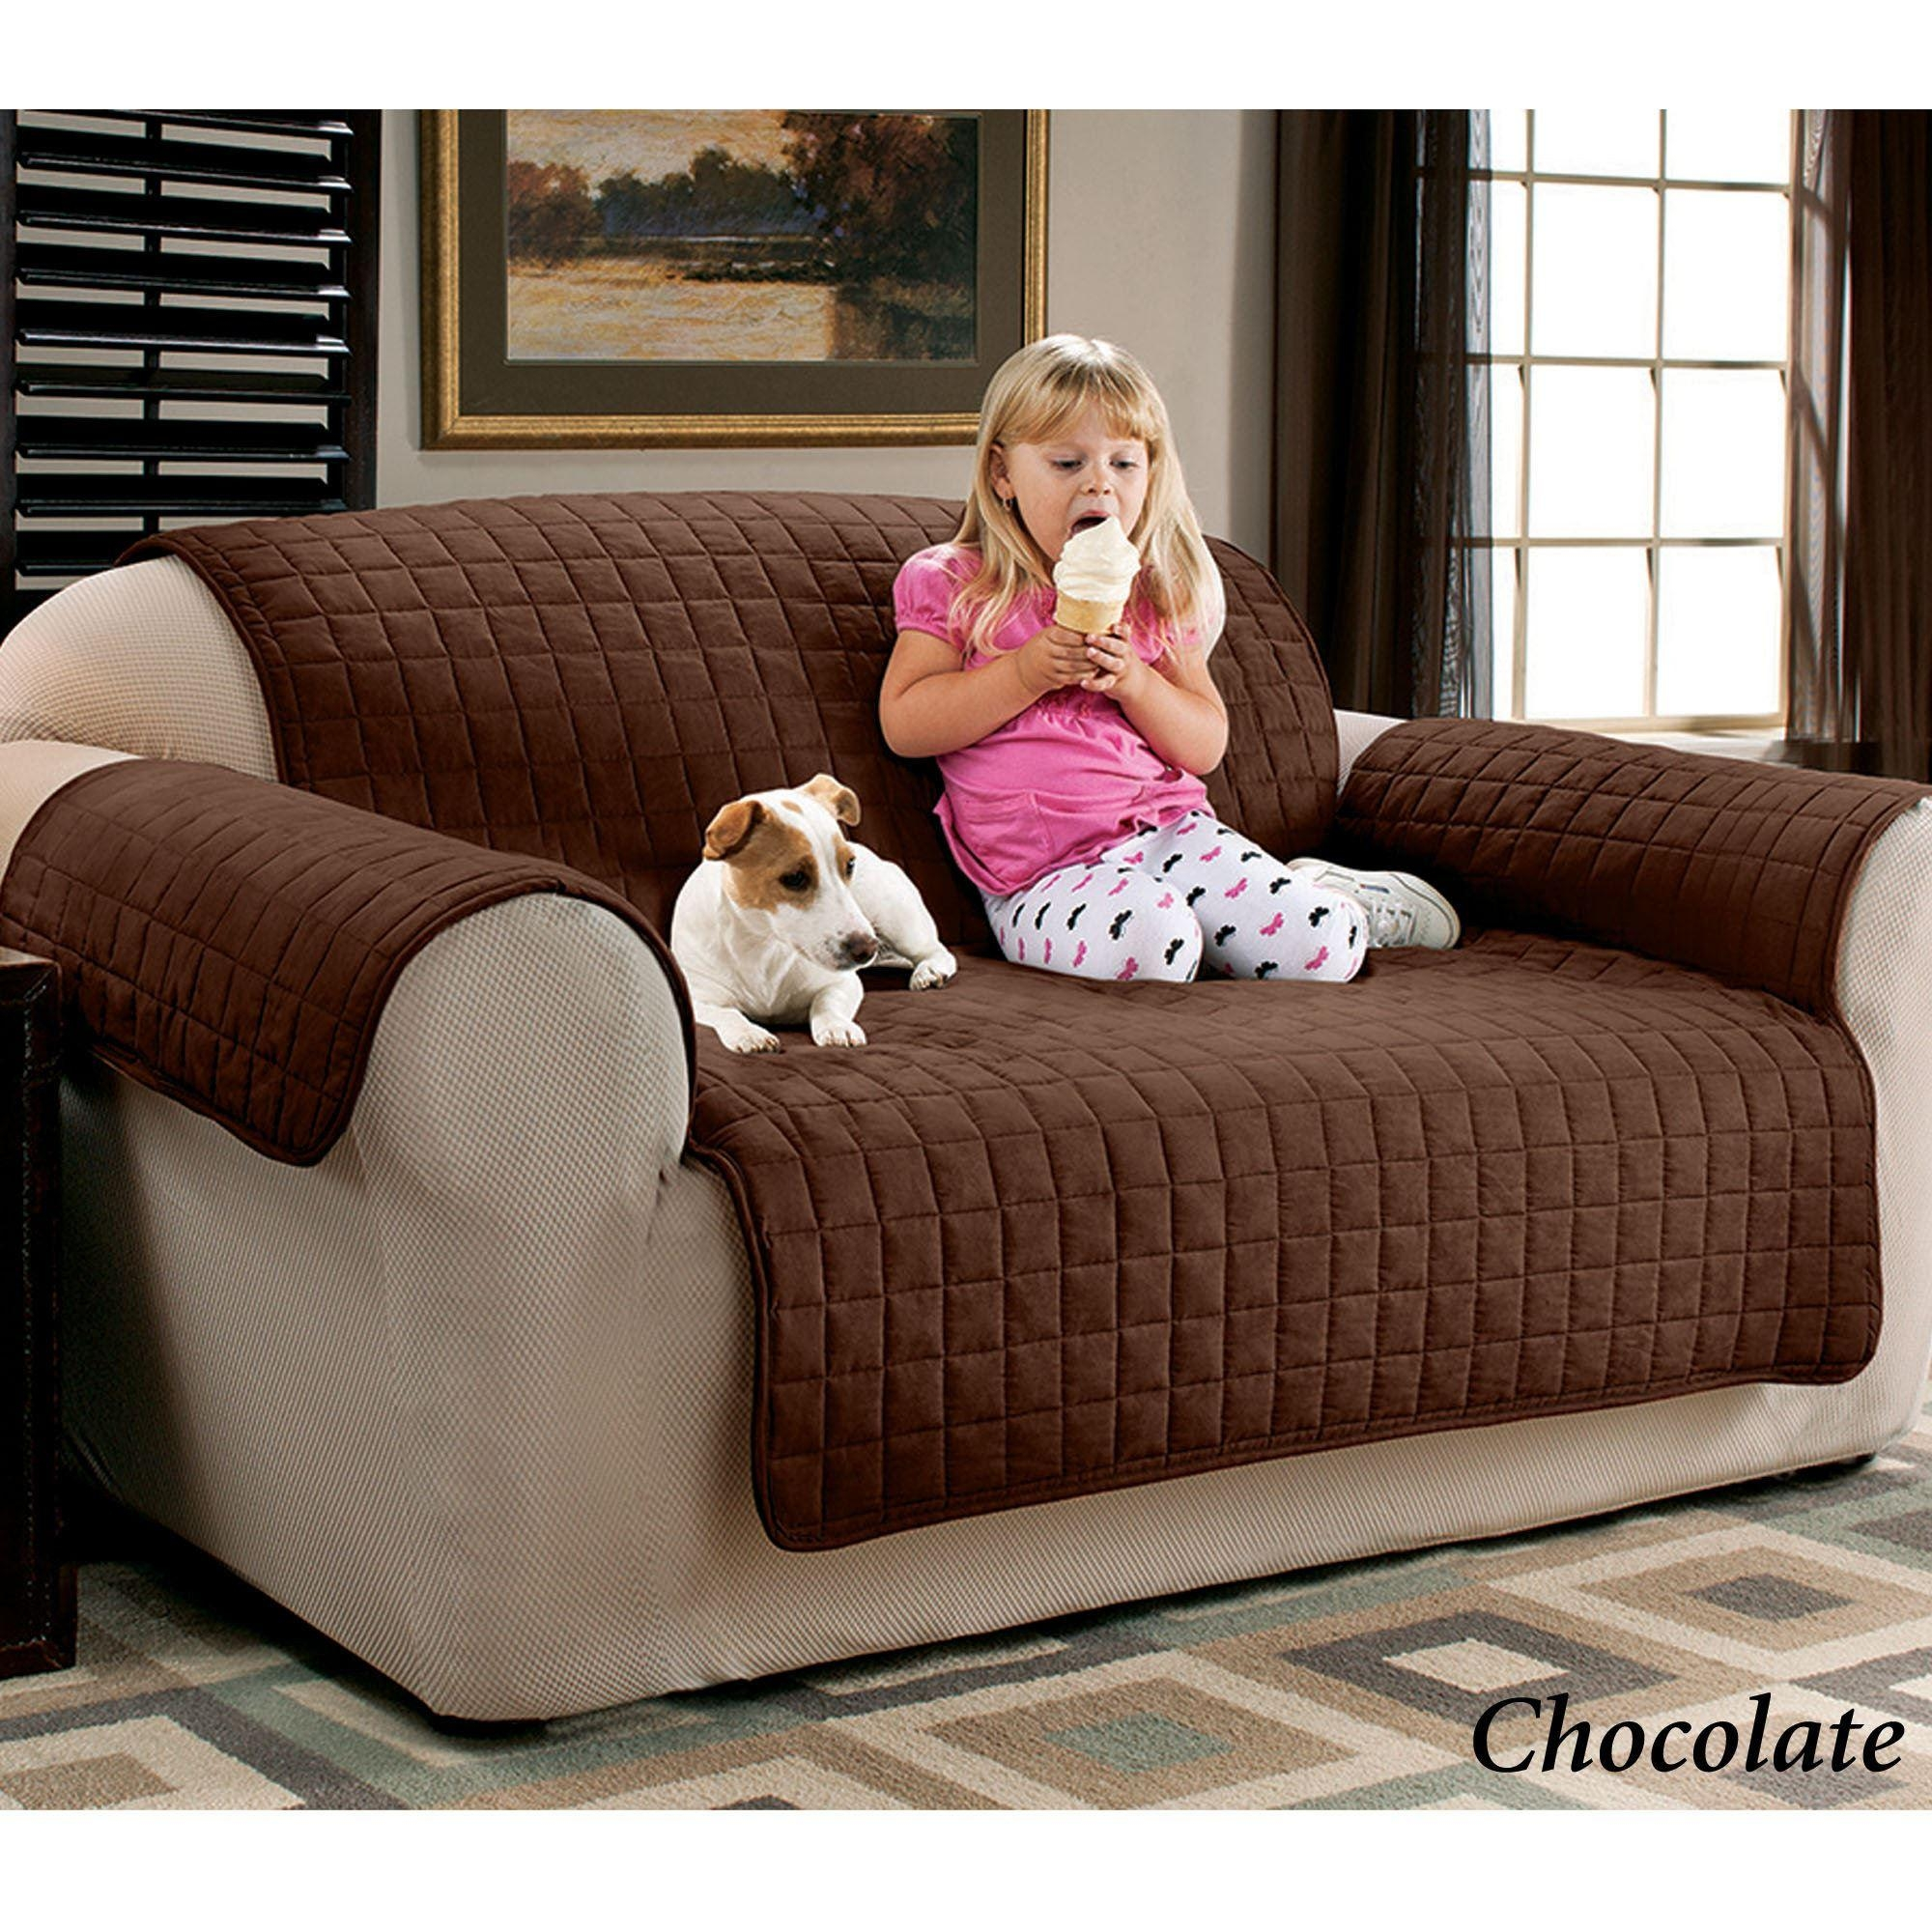 20 choices of dog sofas and chairs sofa ideas. Black Bedroom Furniture Sets. Home Design Ideas